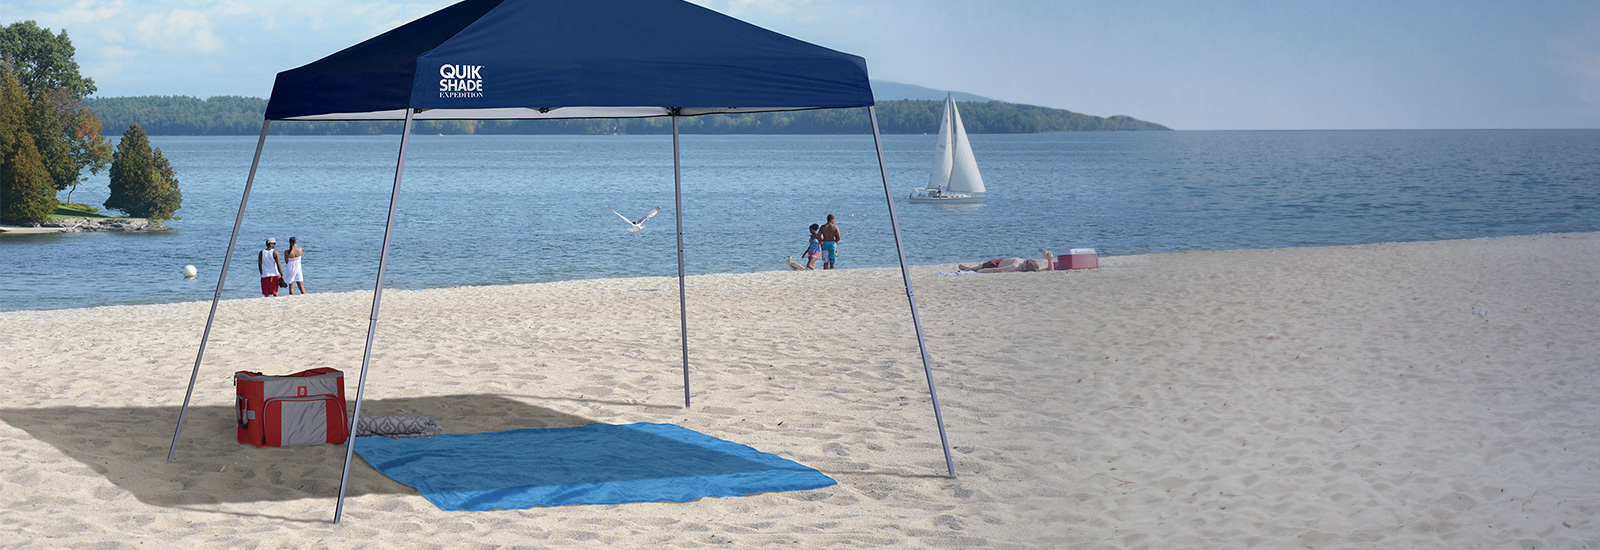 Quik Shade Pop-Up Canopies, Portable Chairs, and other great outdoor products!